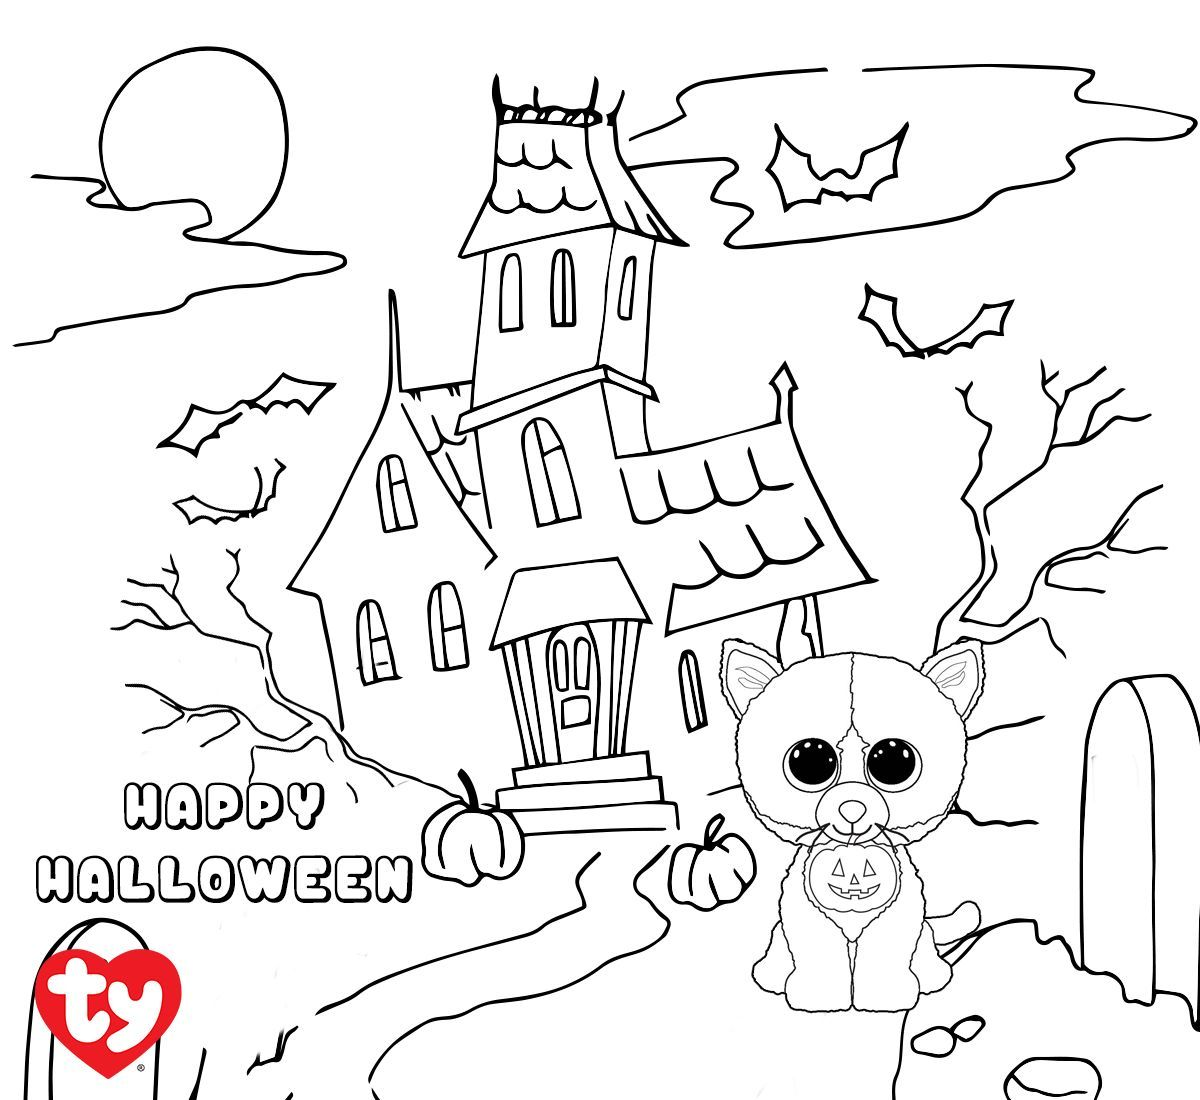 Gratis Ausmalbilder Halloween : Shadow Is Almost Ready For Halloween Can You Give This Kitty Some